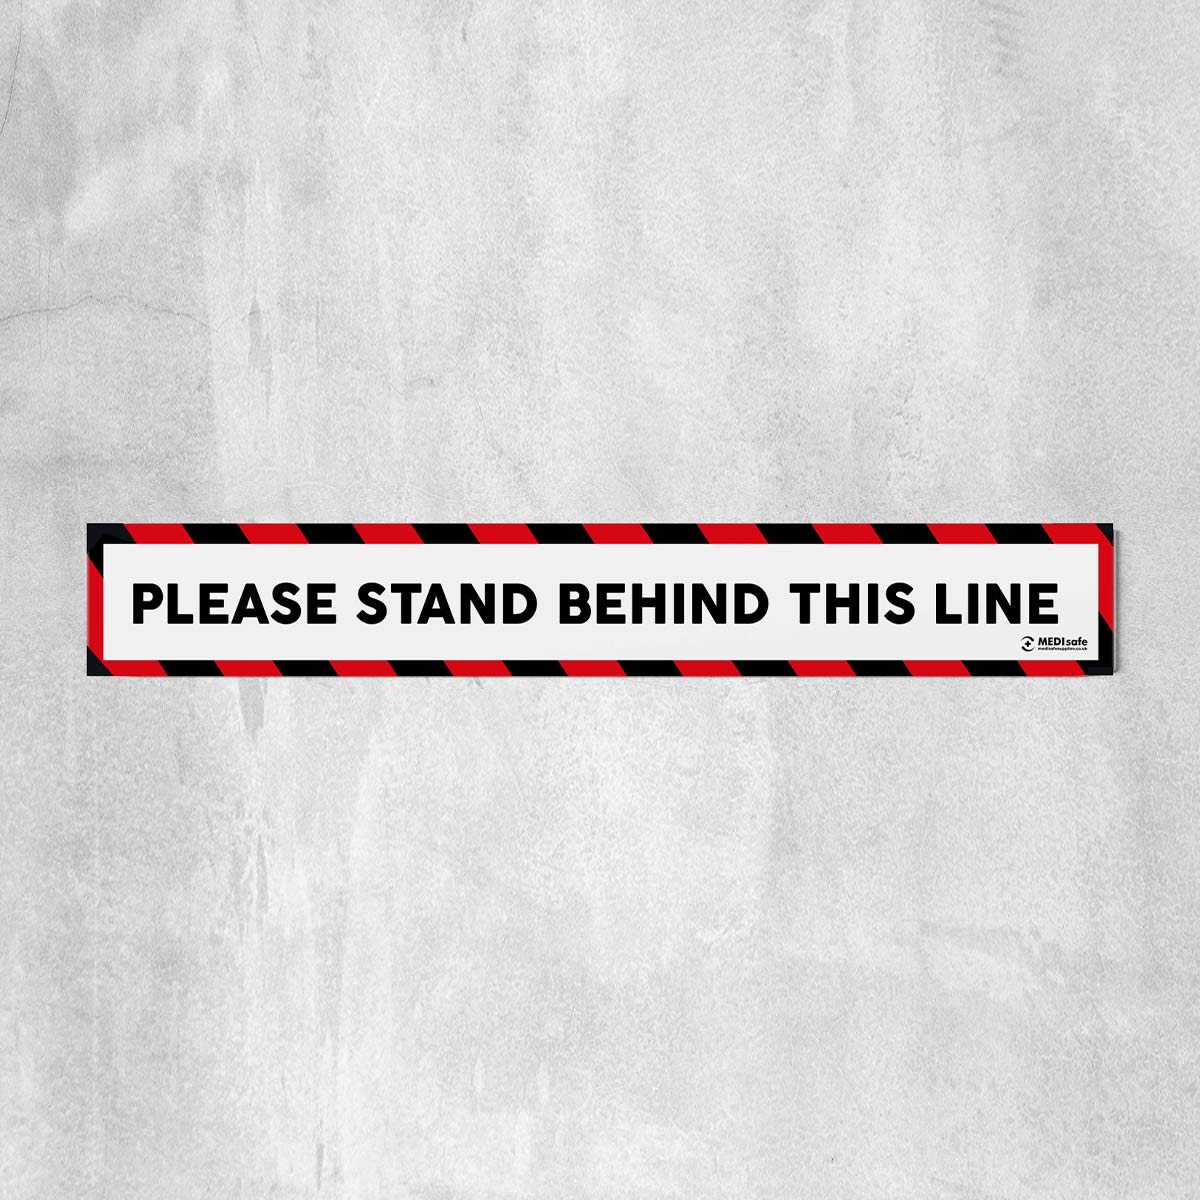 Please Stand Behind This Line Floor Stickers red white